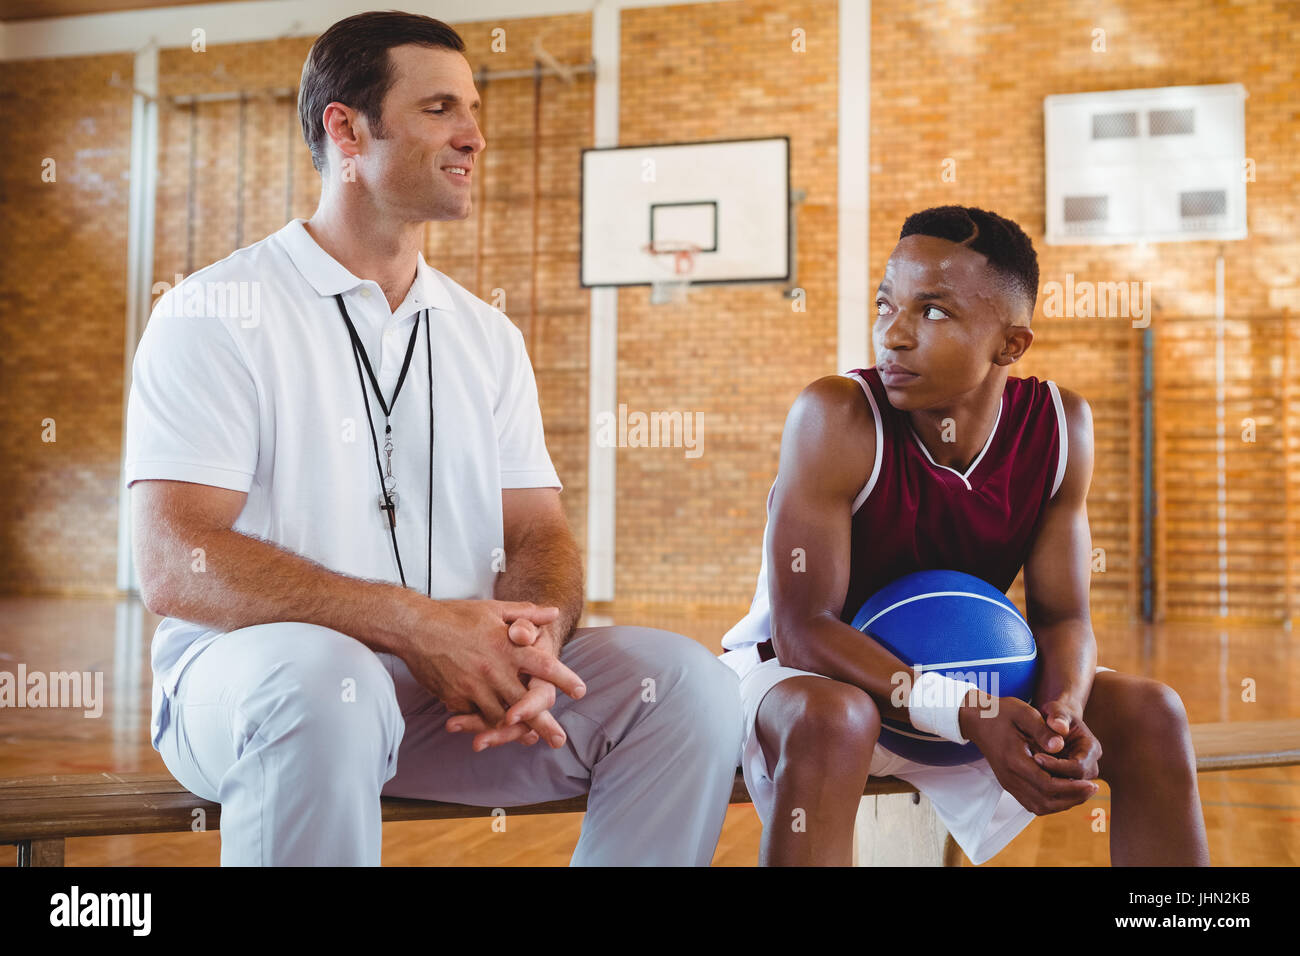 Smiling coach guiding basketball player while sitting on bench in court - Stock Image